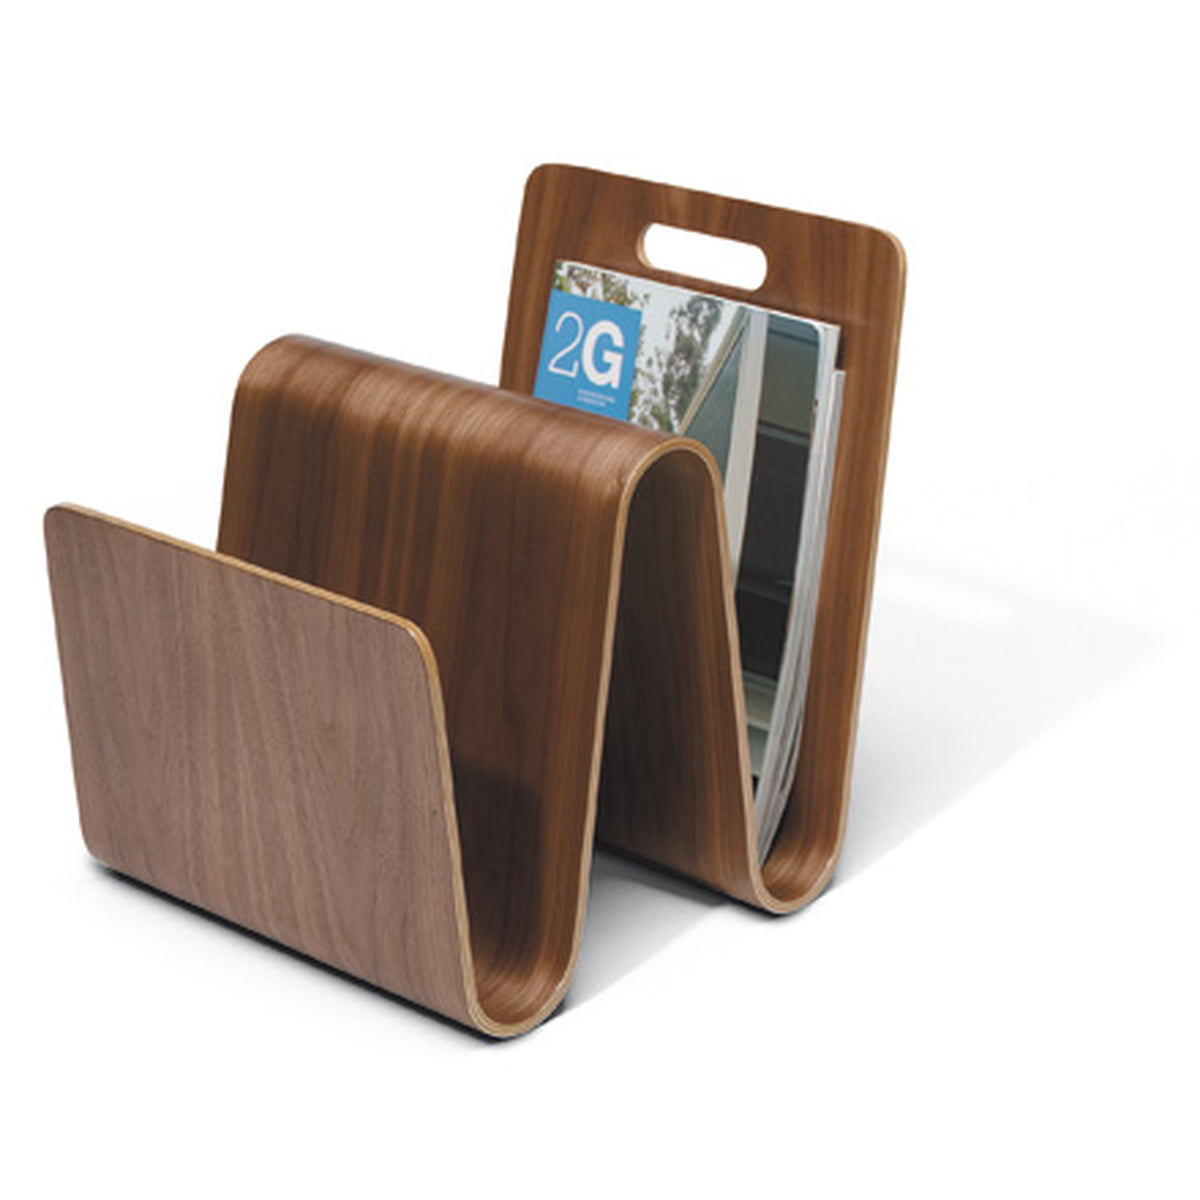 newspaper rack mag stand by offi in the shop - offi  newspaper rack mag stand in walnut